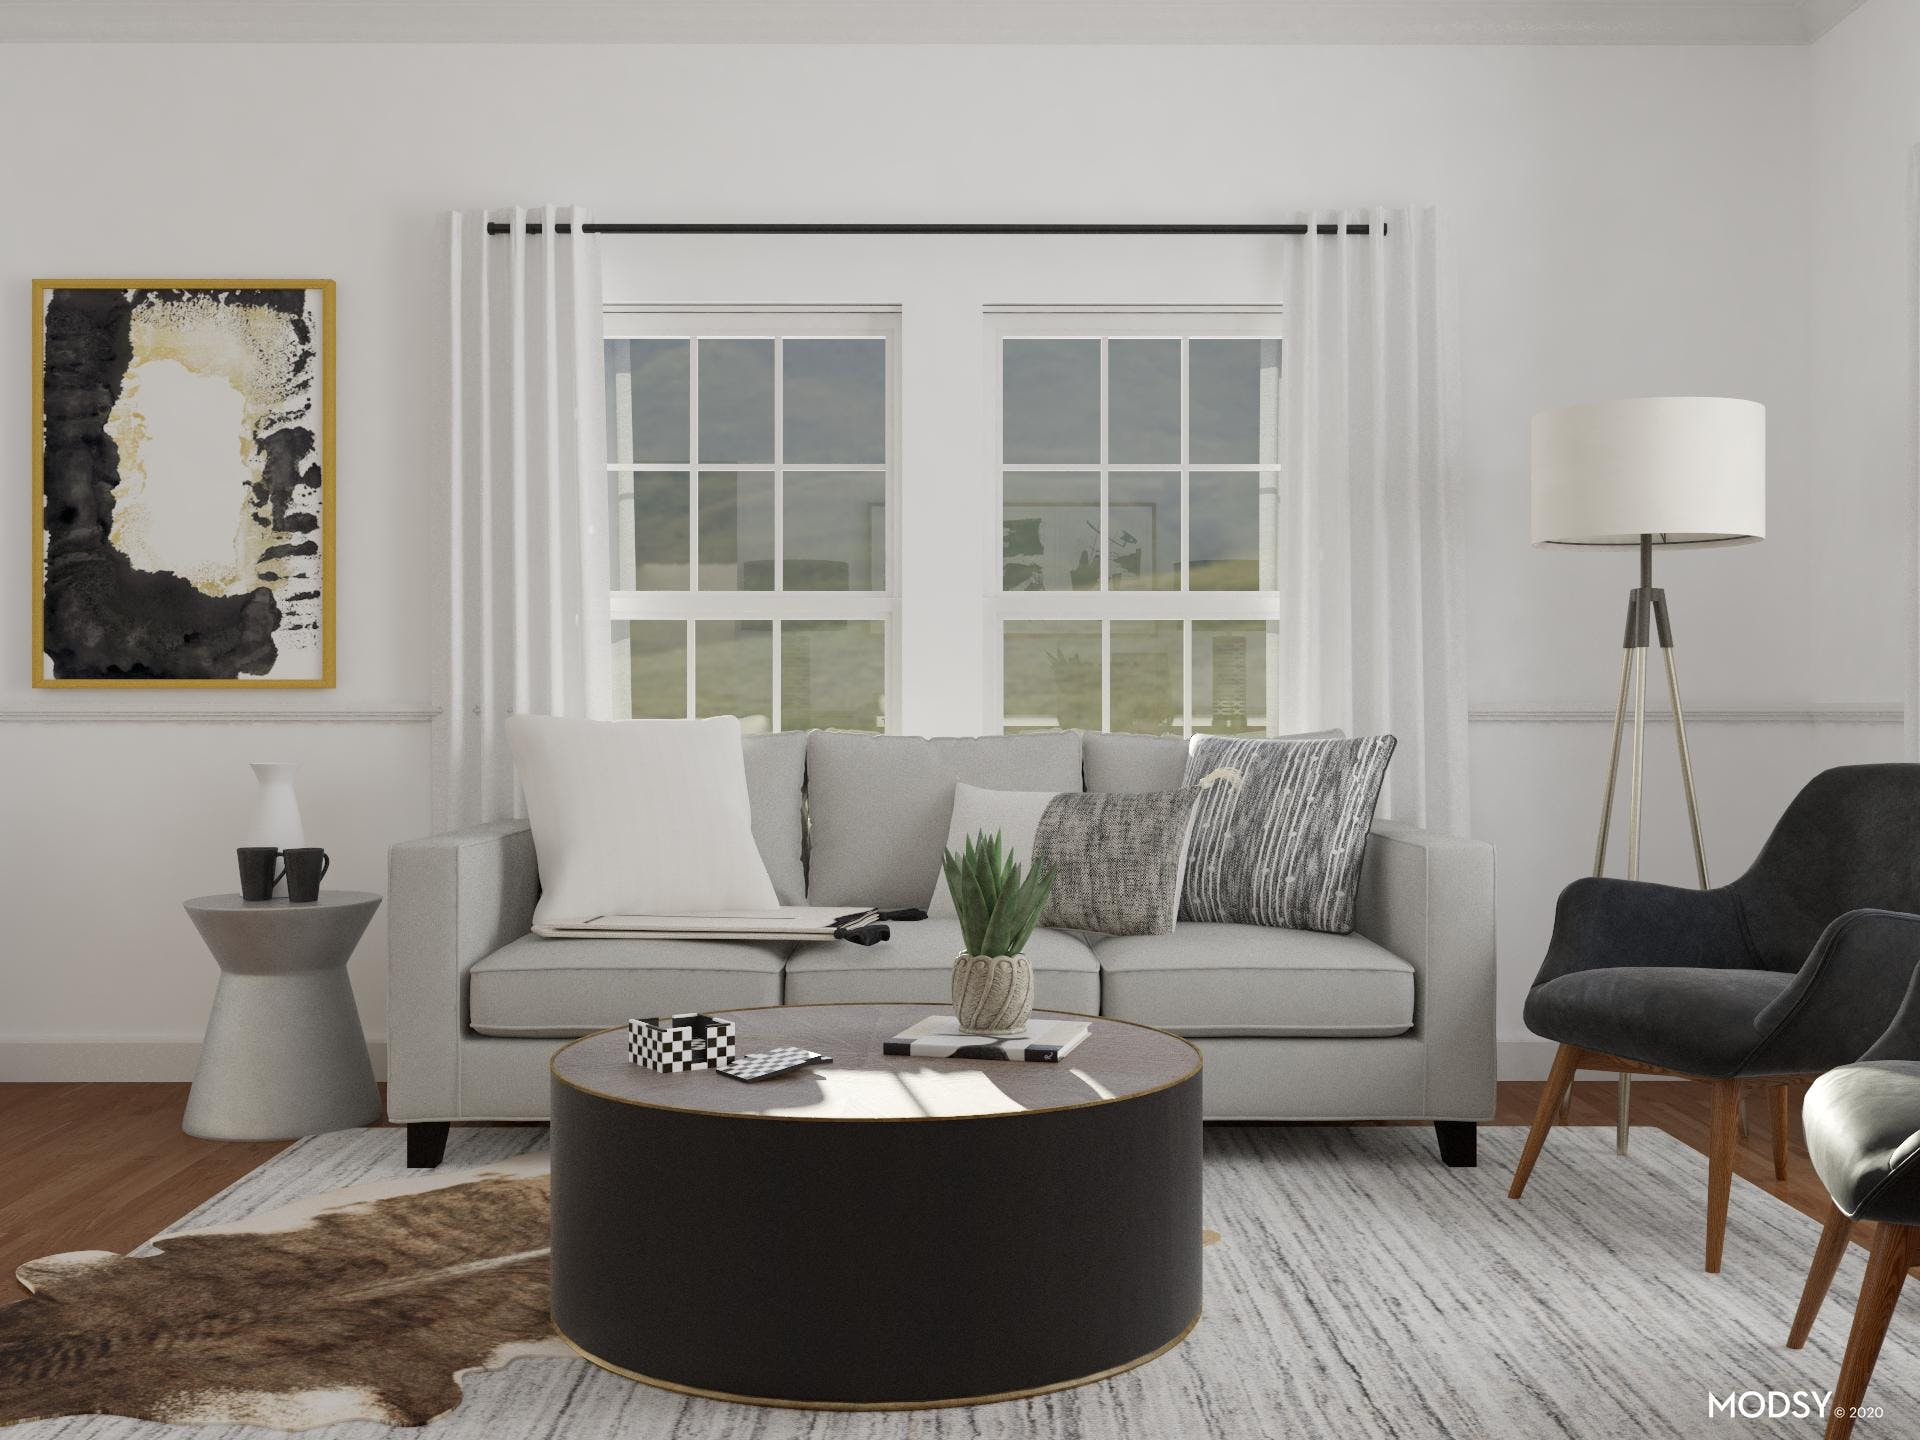 Be Bold: Contemporary Black And White